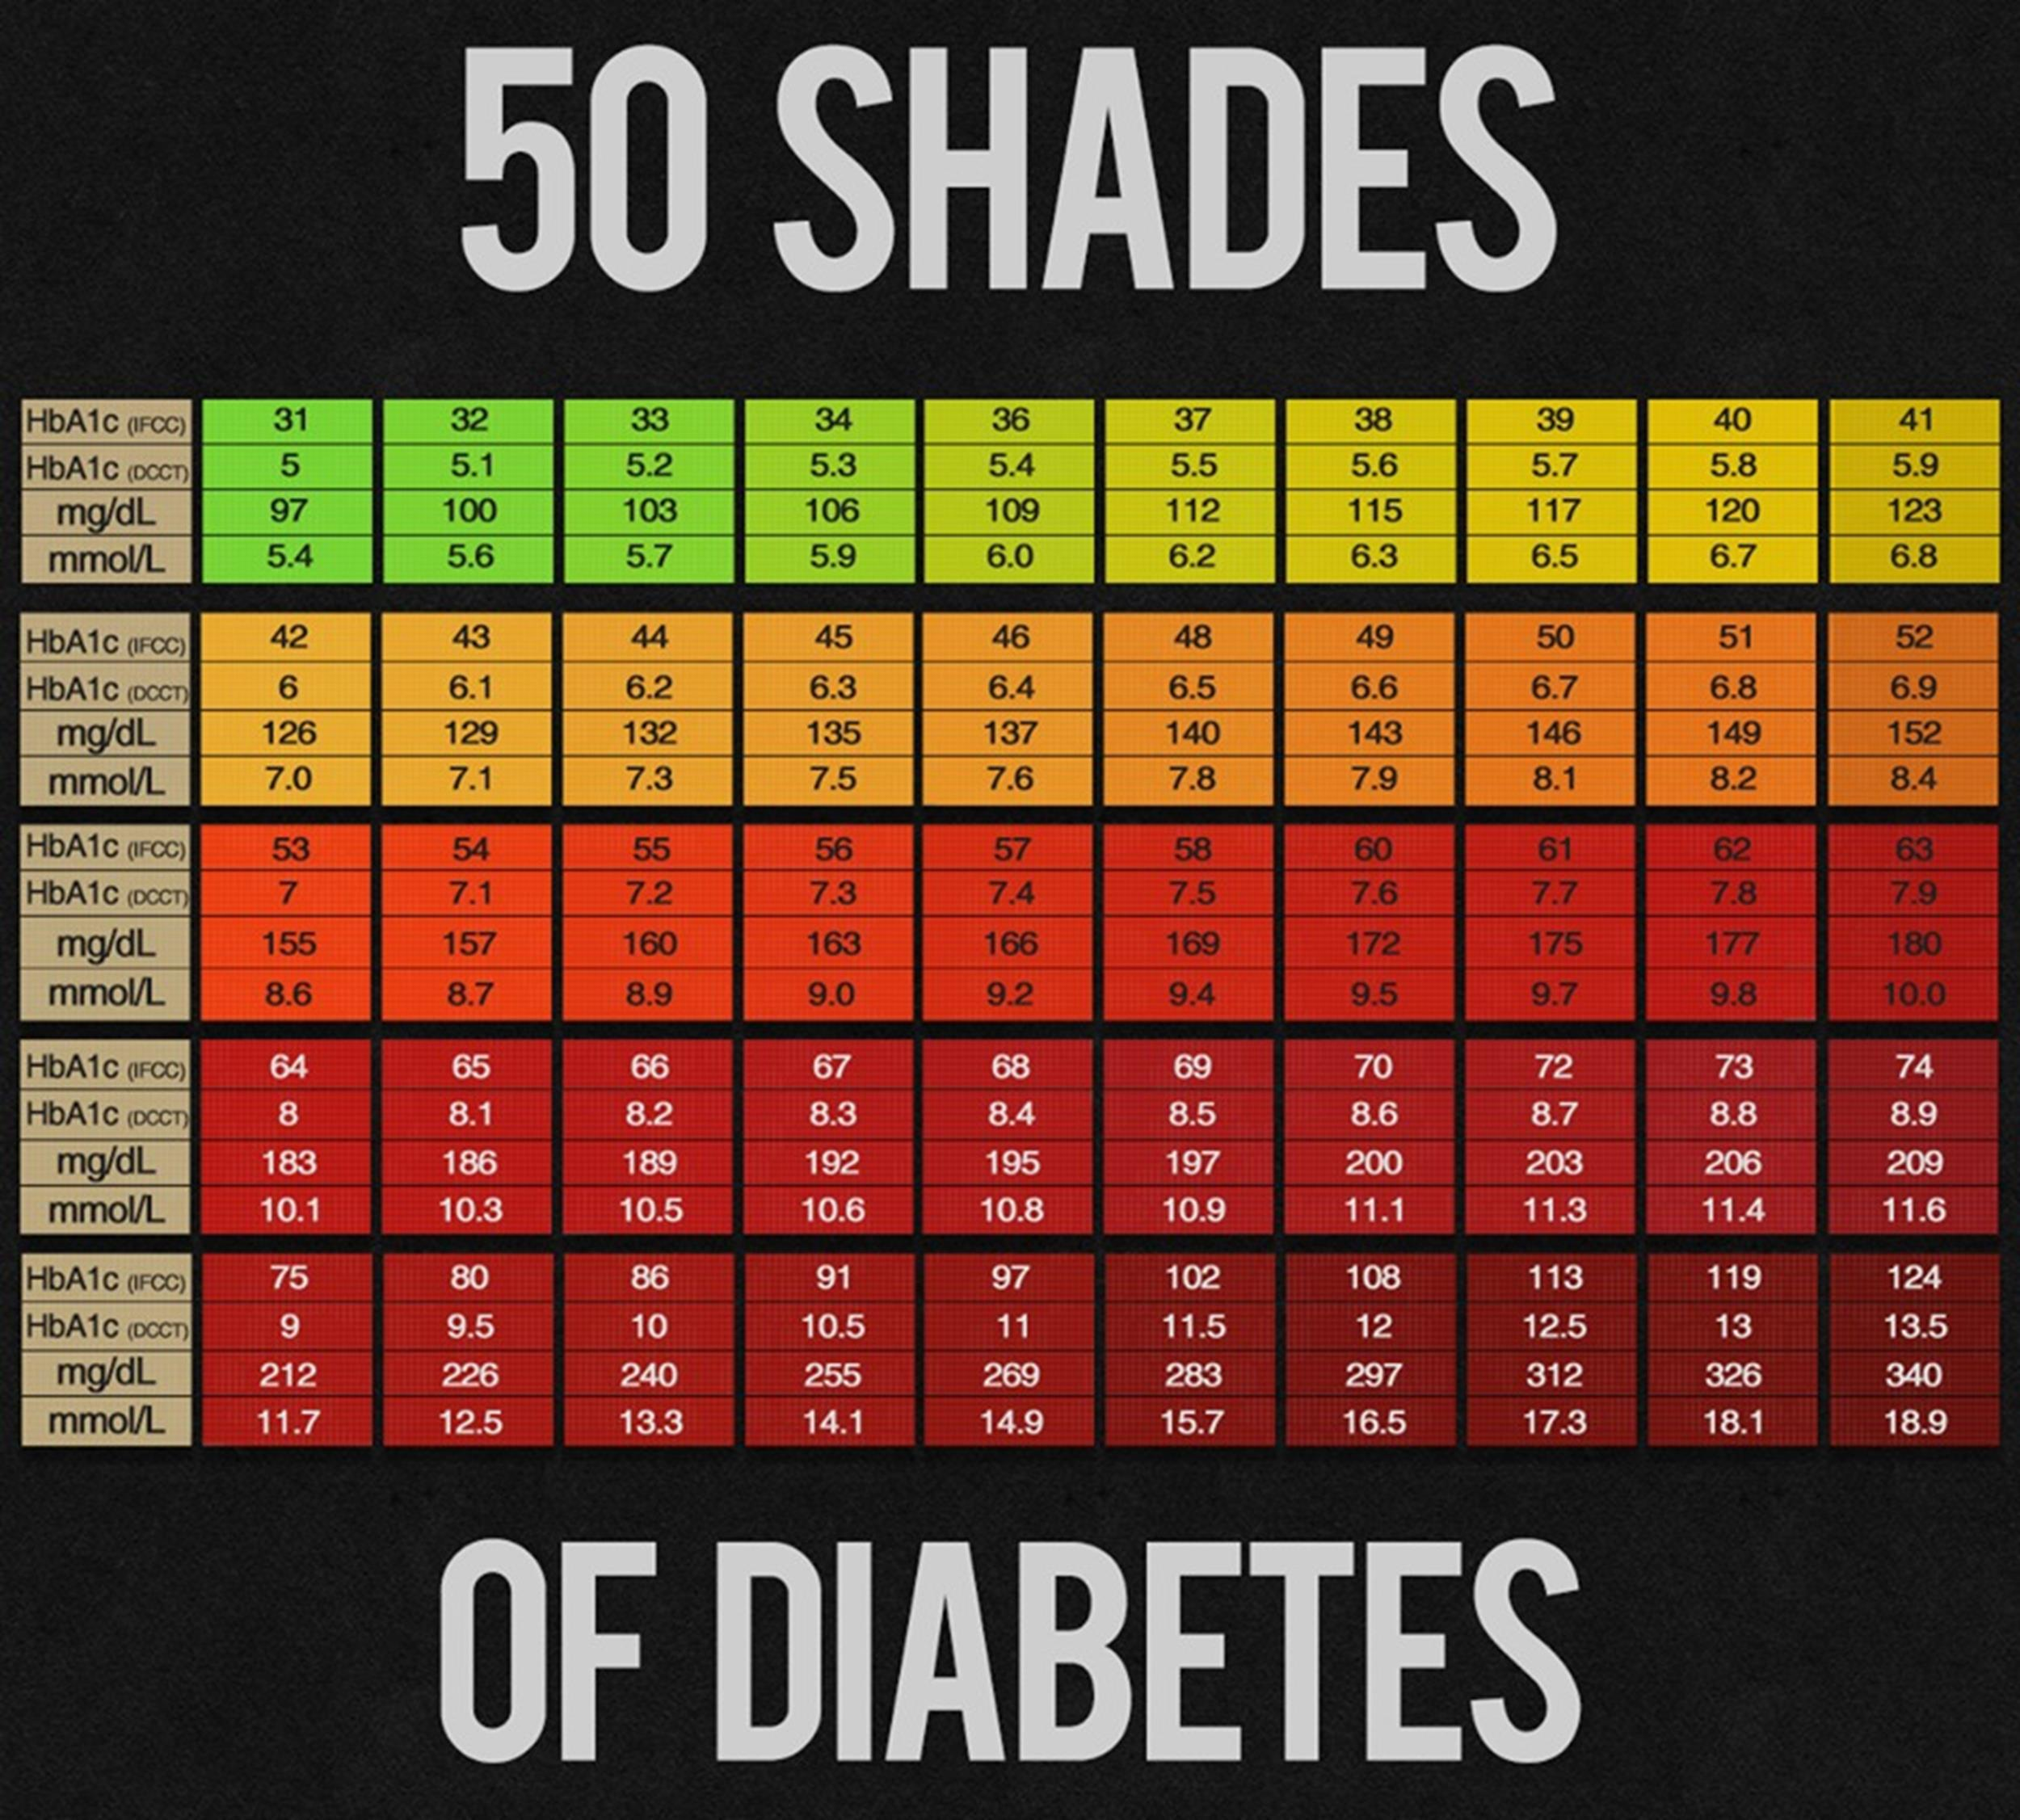 blood sugar chart 17 - screenshot